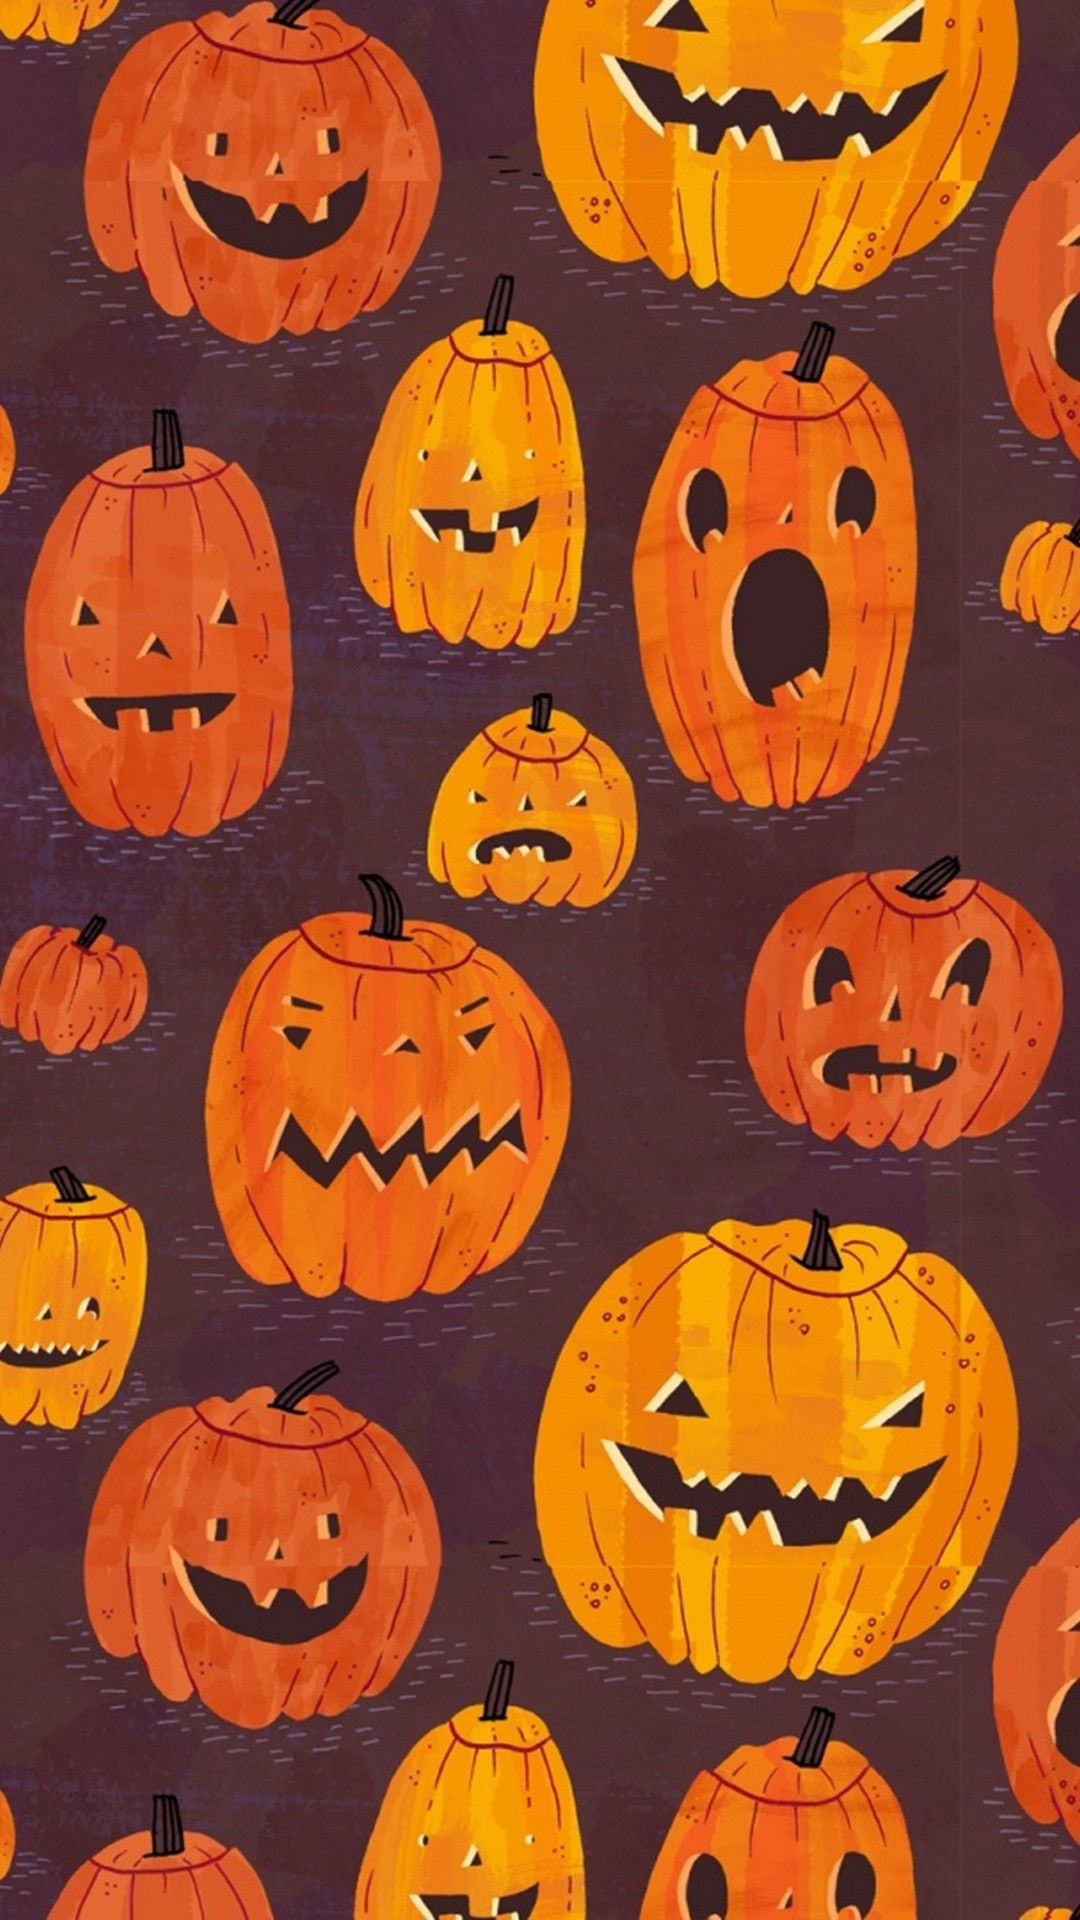 Iphone Halloween Wallpaper Best Wallpaper Hd Pumpkin Wallpaper Halloween Wallpaper Iphone Halloween Wallpaper